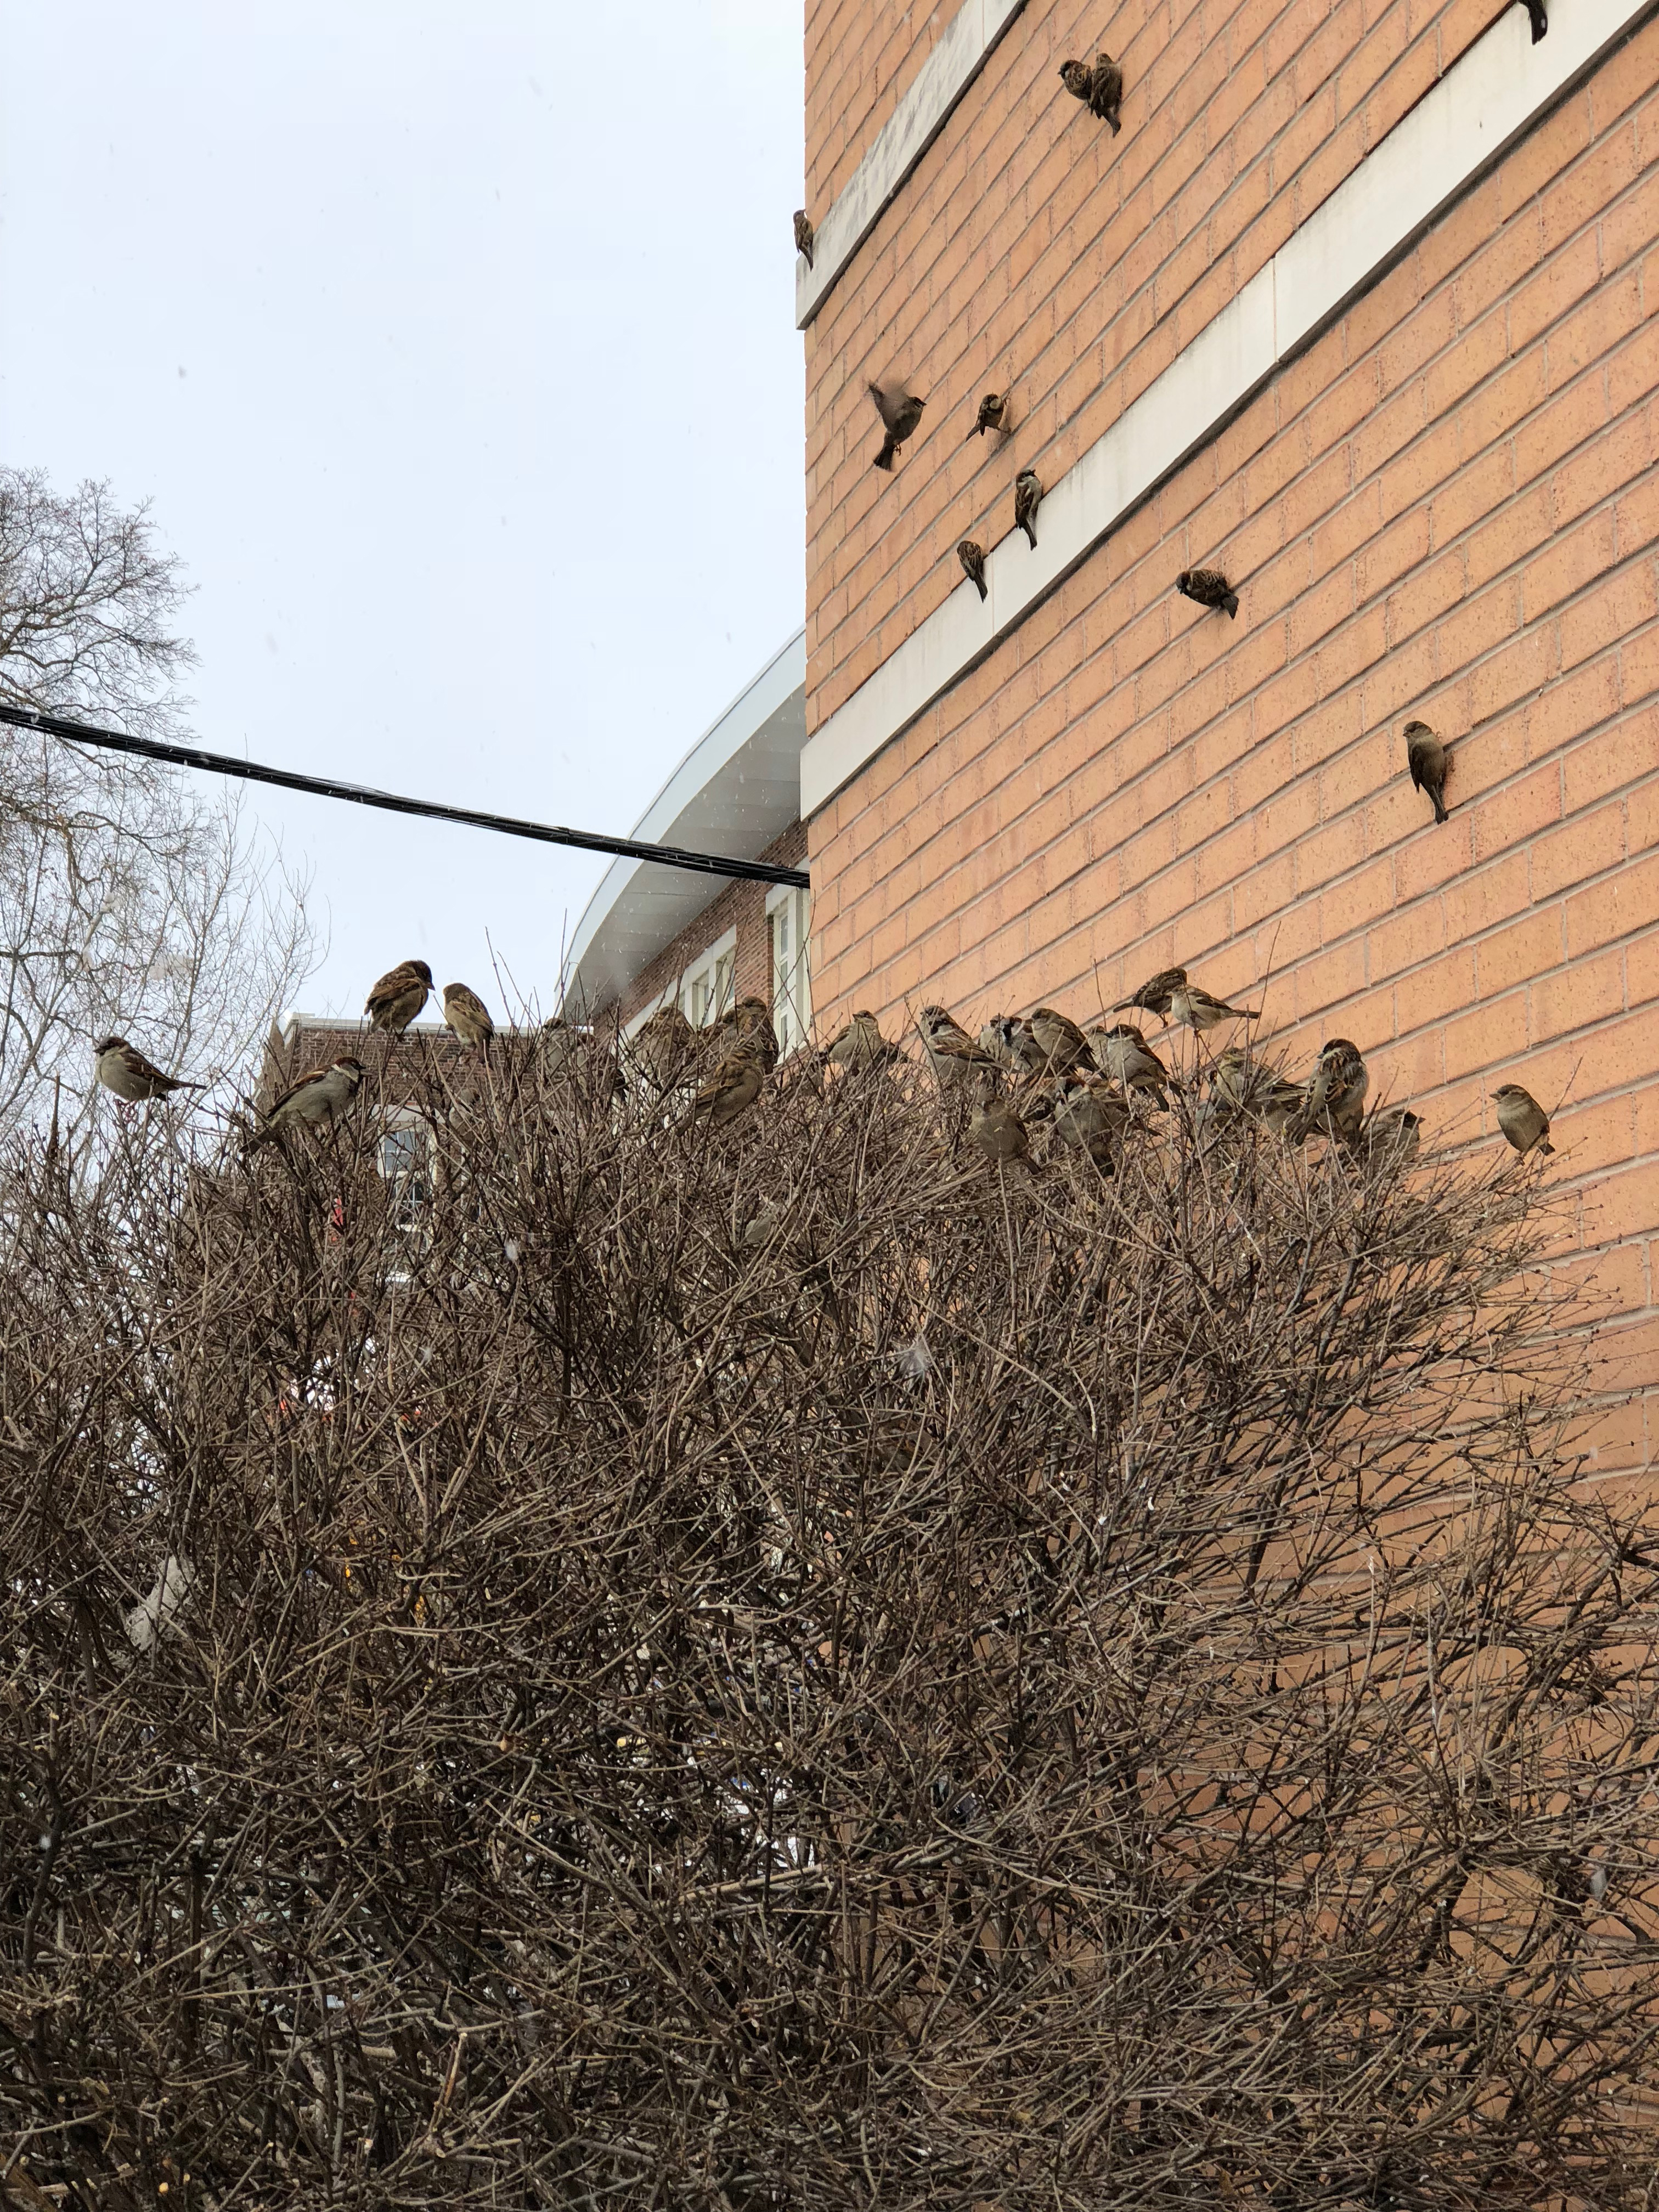 Birds sticking together in the cold - Josh Kern photography